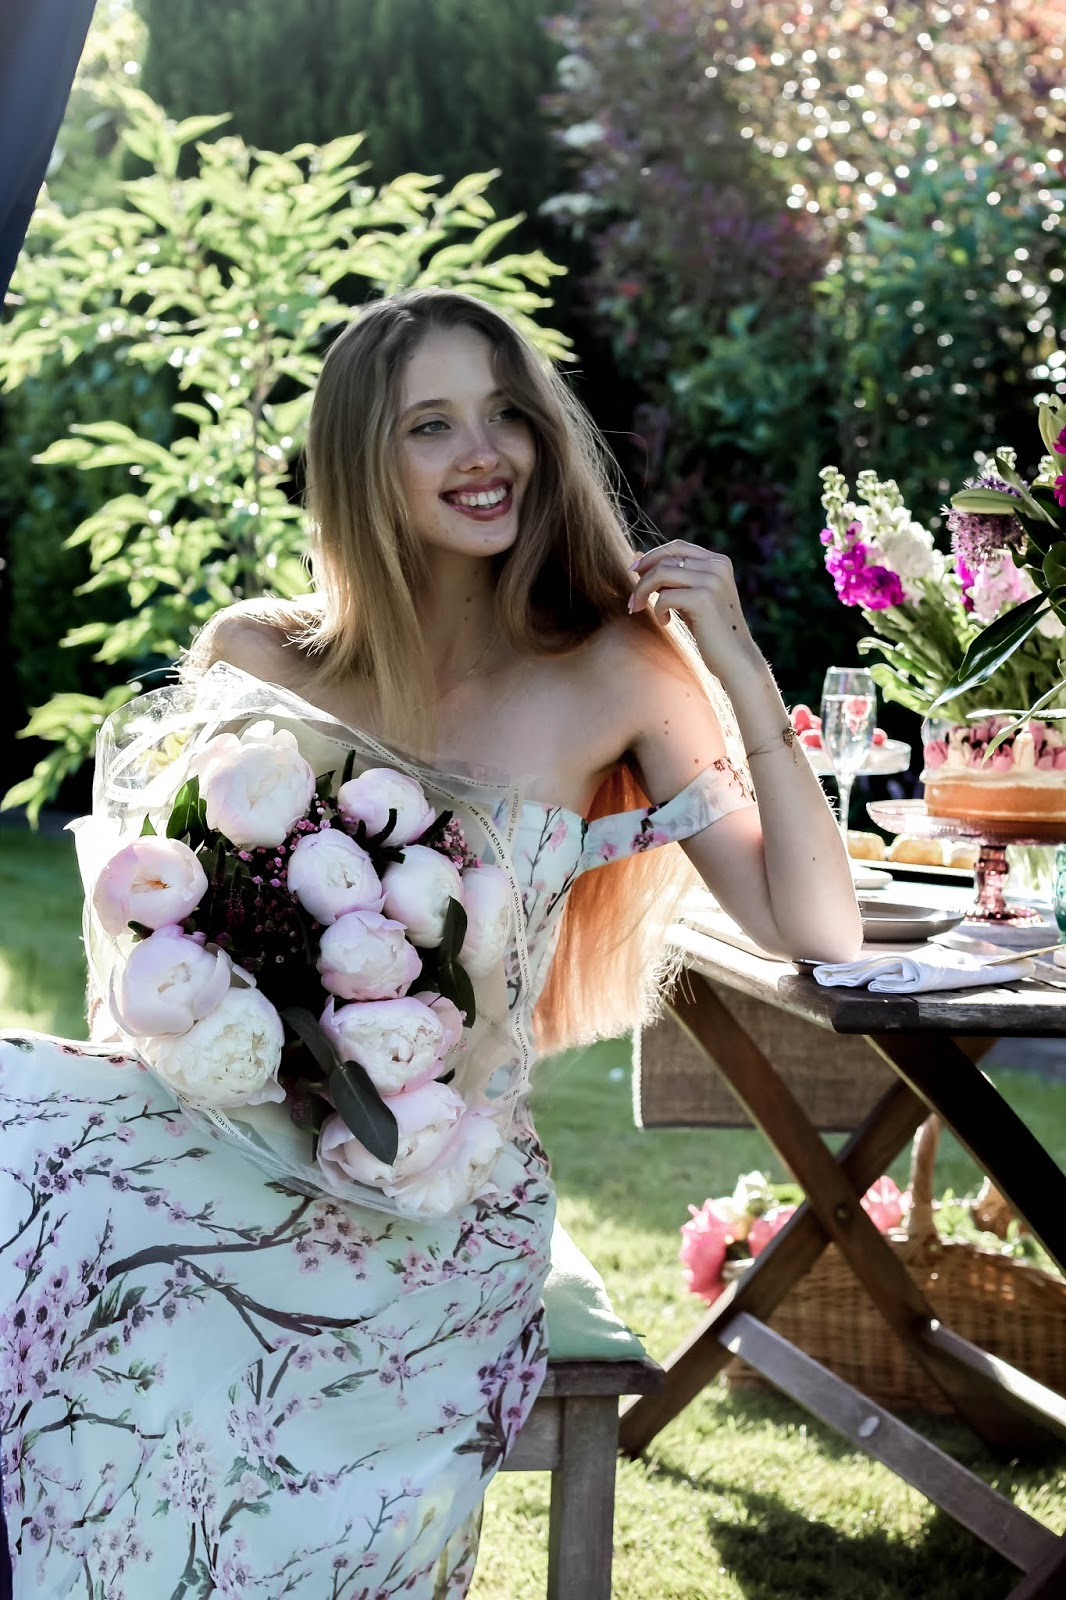 Fashion Blogger Holding Bouquet of Flowers Peonies